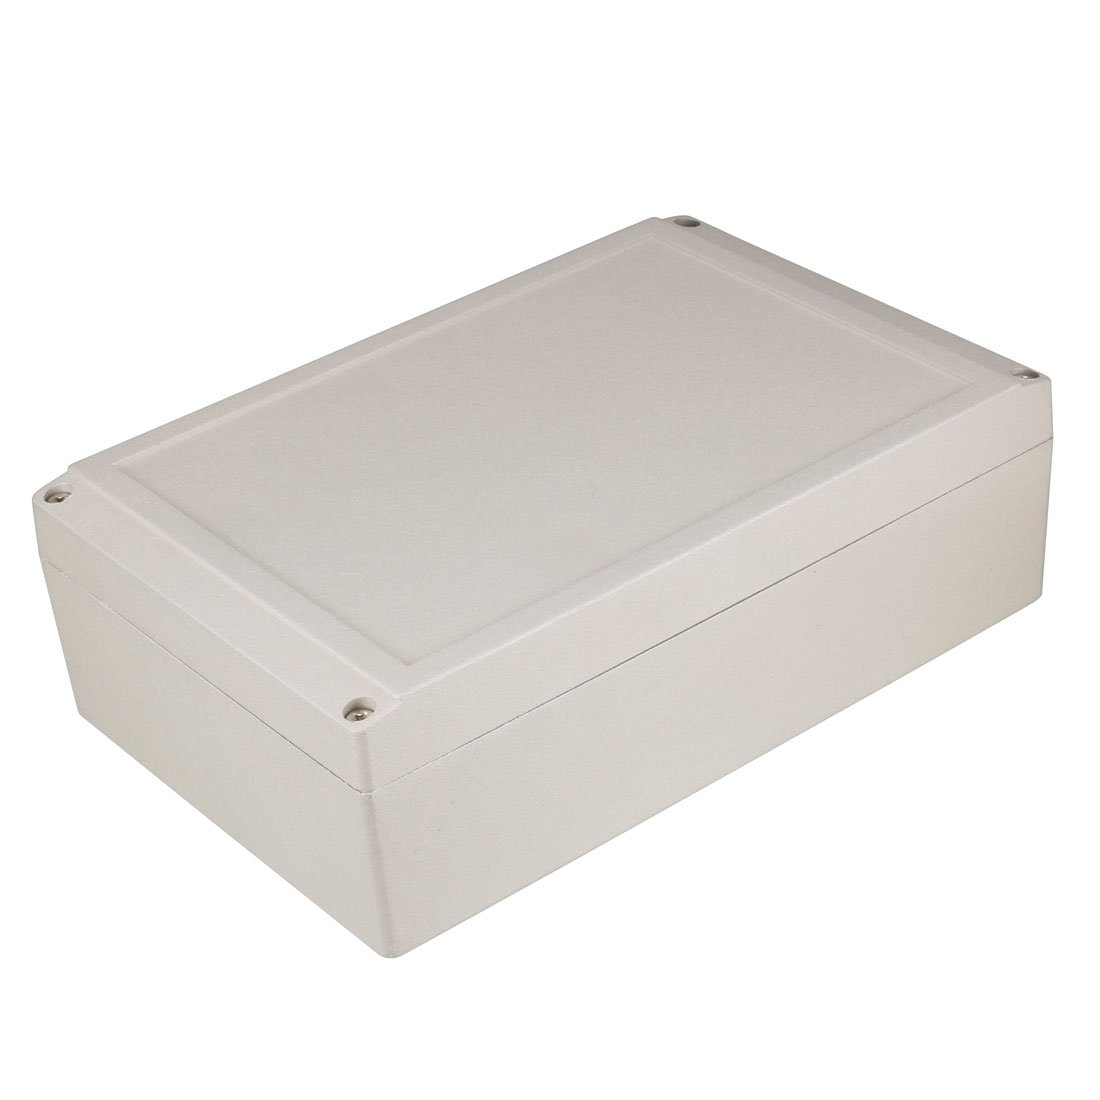 uxcell 9 inches x 5.9 inches x 3 inches 228mmx150mmx75mm Aluminum Waterproof Junction Box Universal Electric Project Enclosure